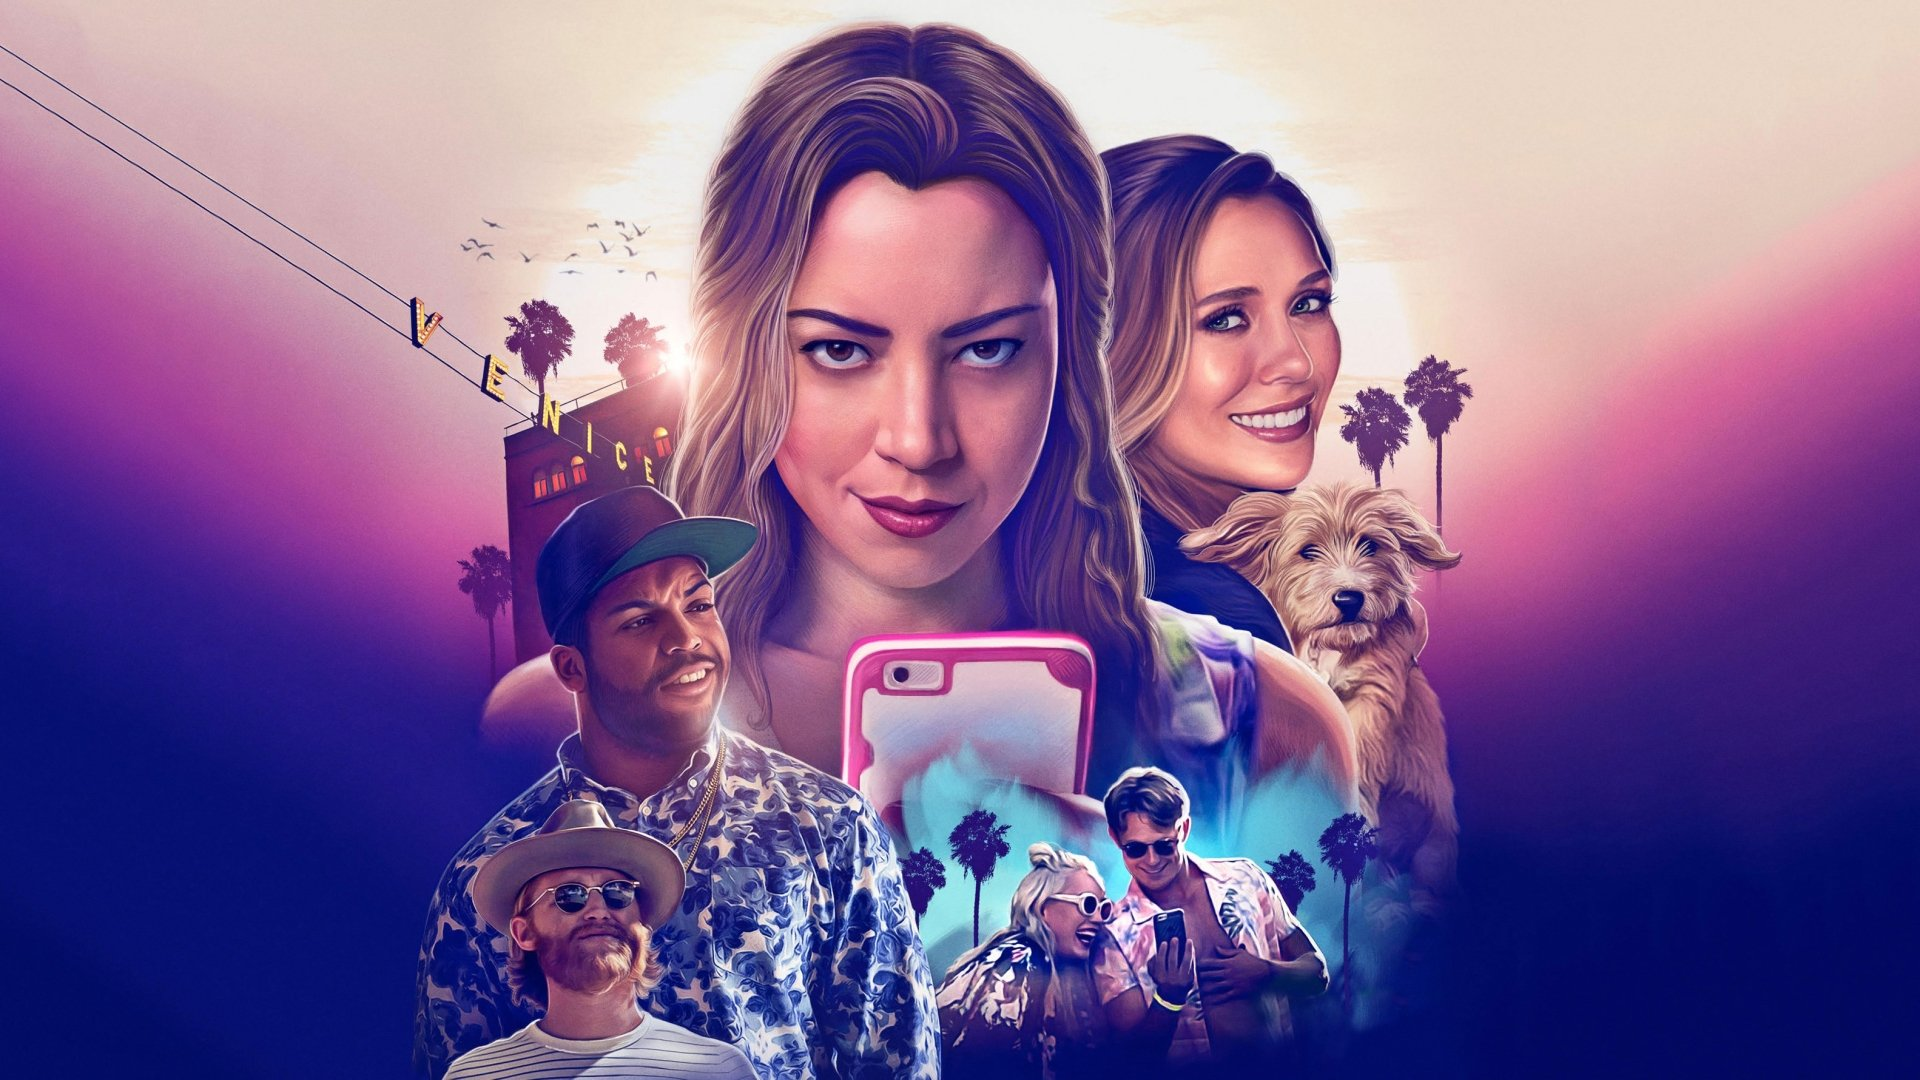 Movie - Ingrid Goes West  Aubrey Plaza Elizabeth Olsen Wyatt Russell O'Shea Jackson Jr. Billy Magnussen Pom Klementieff Wallpaper